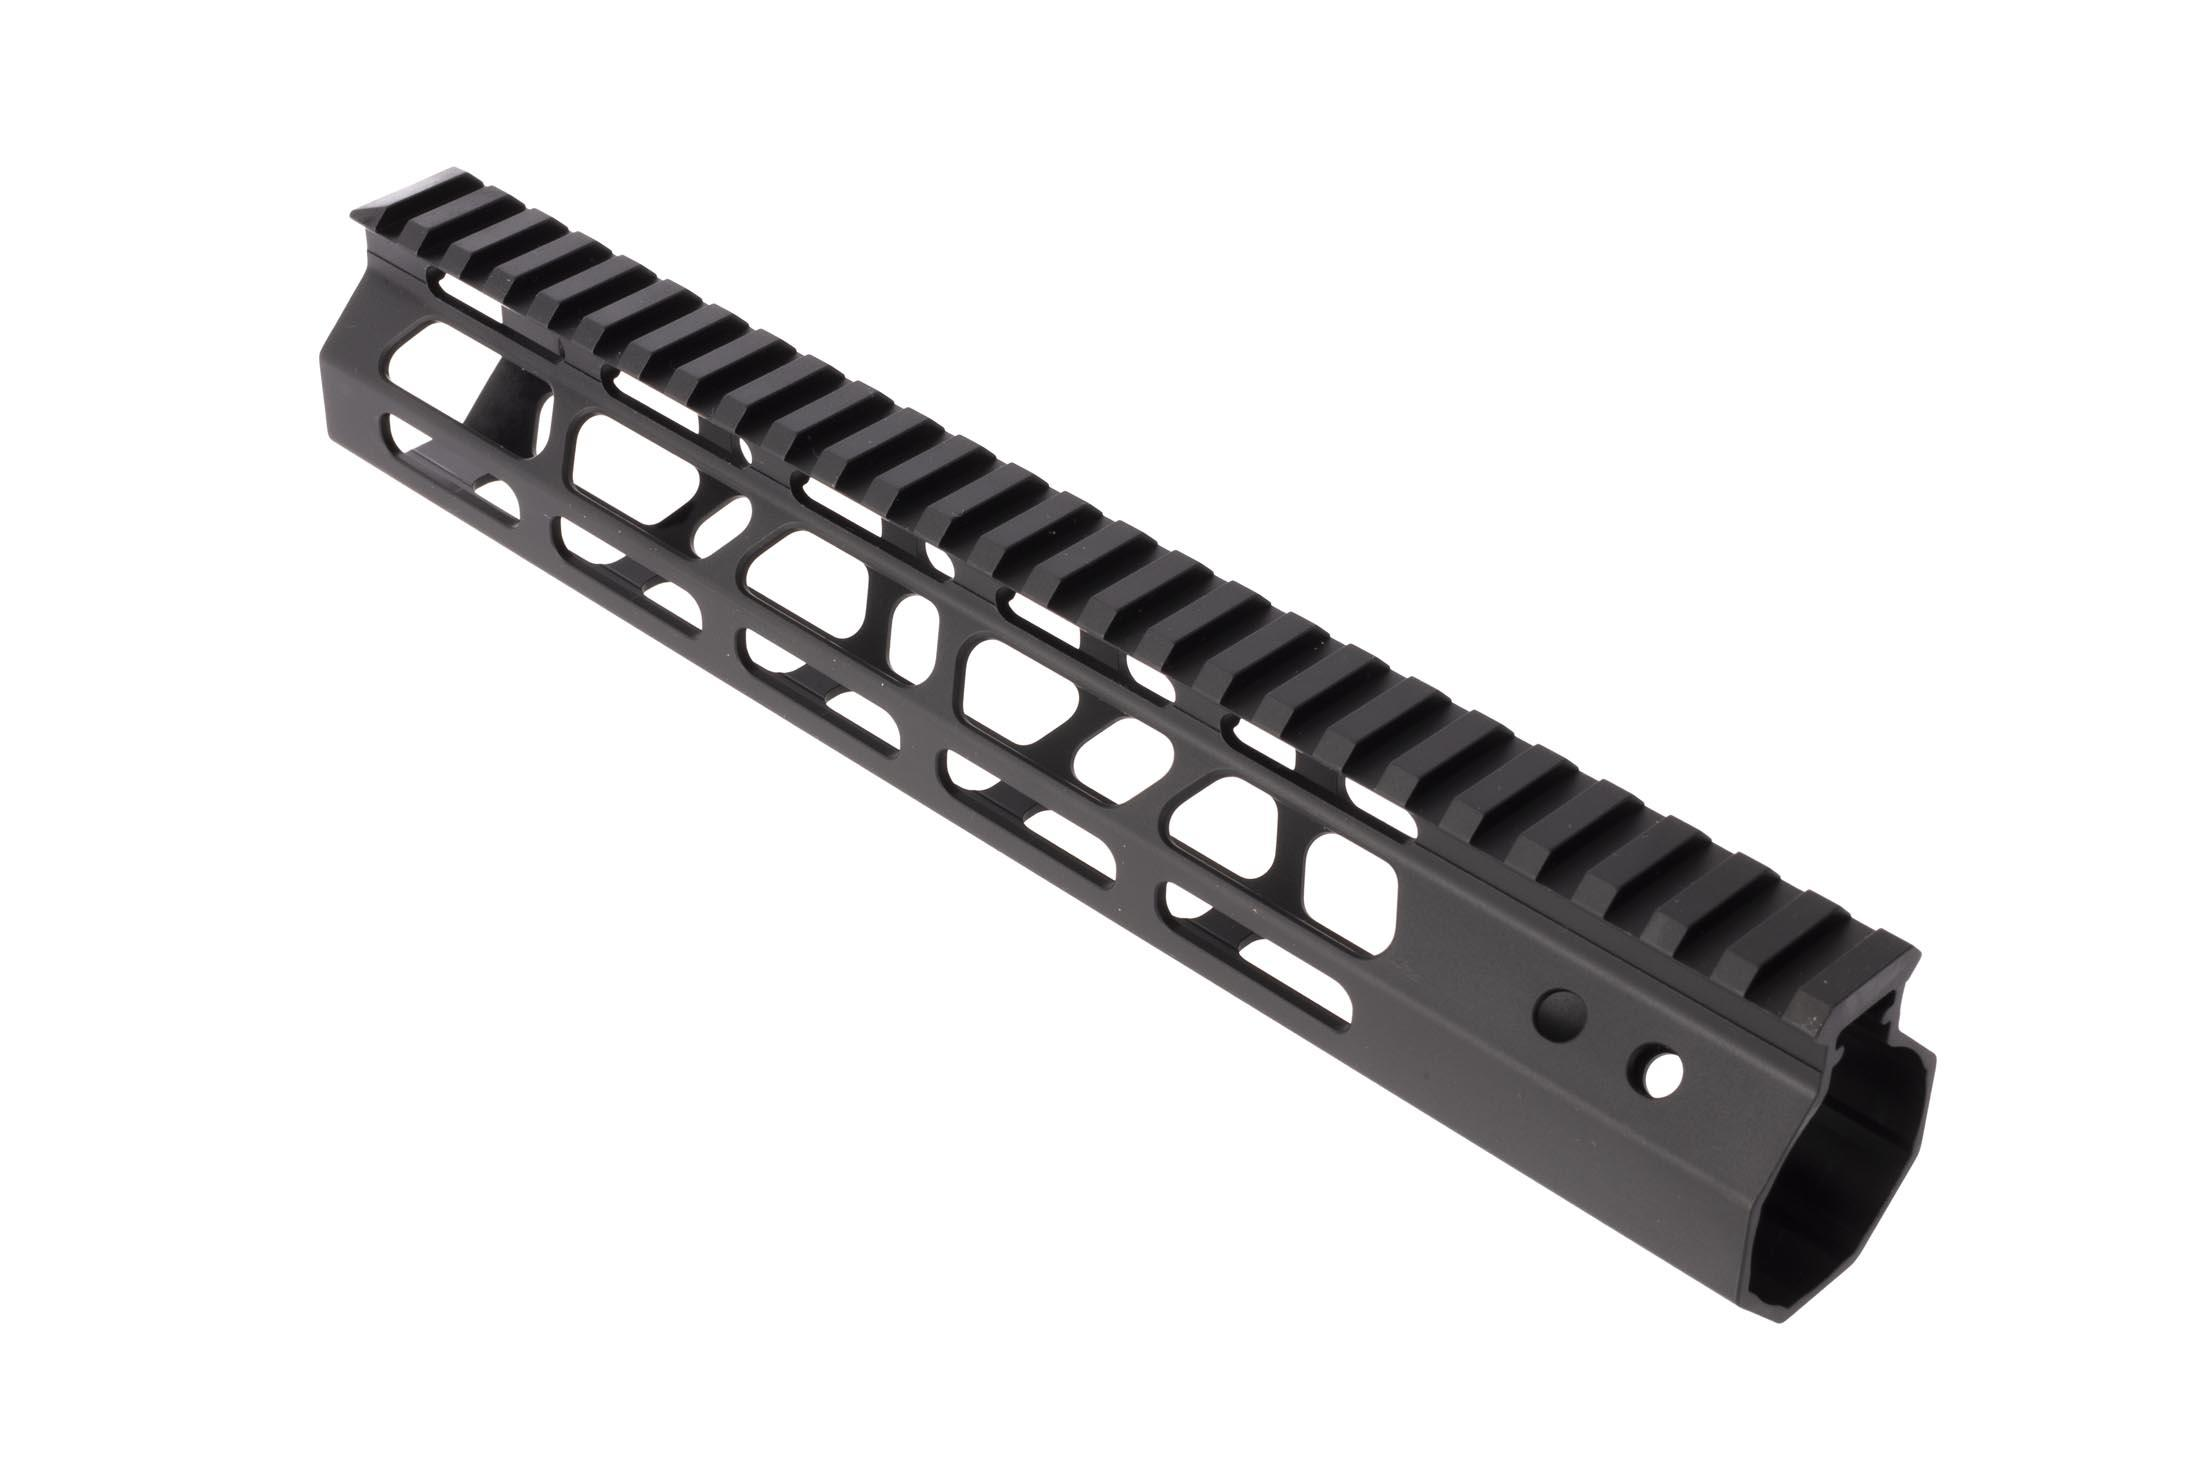 Foxtrot Mike Products Ultra Light Free Float Handguard - M-LOK - Gen 2 - 10.5